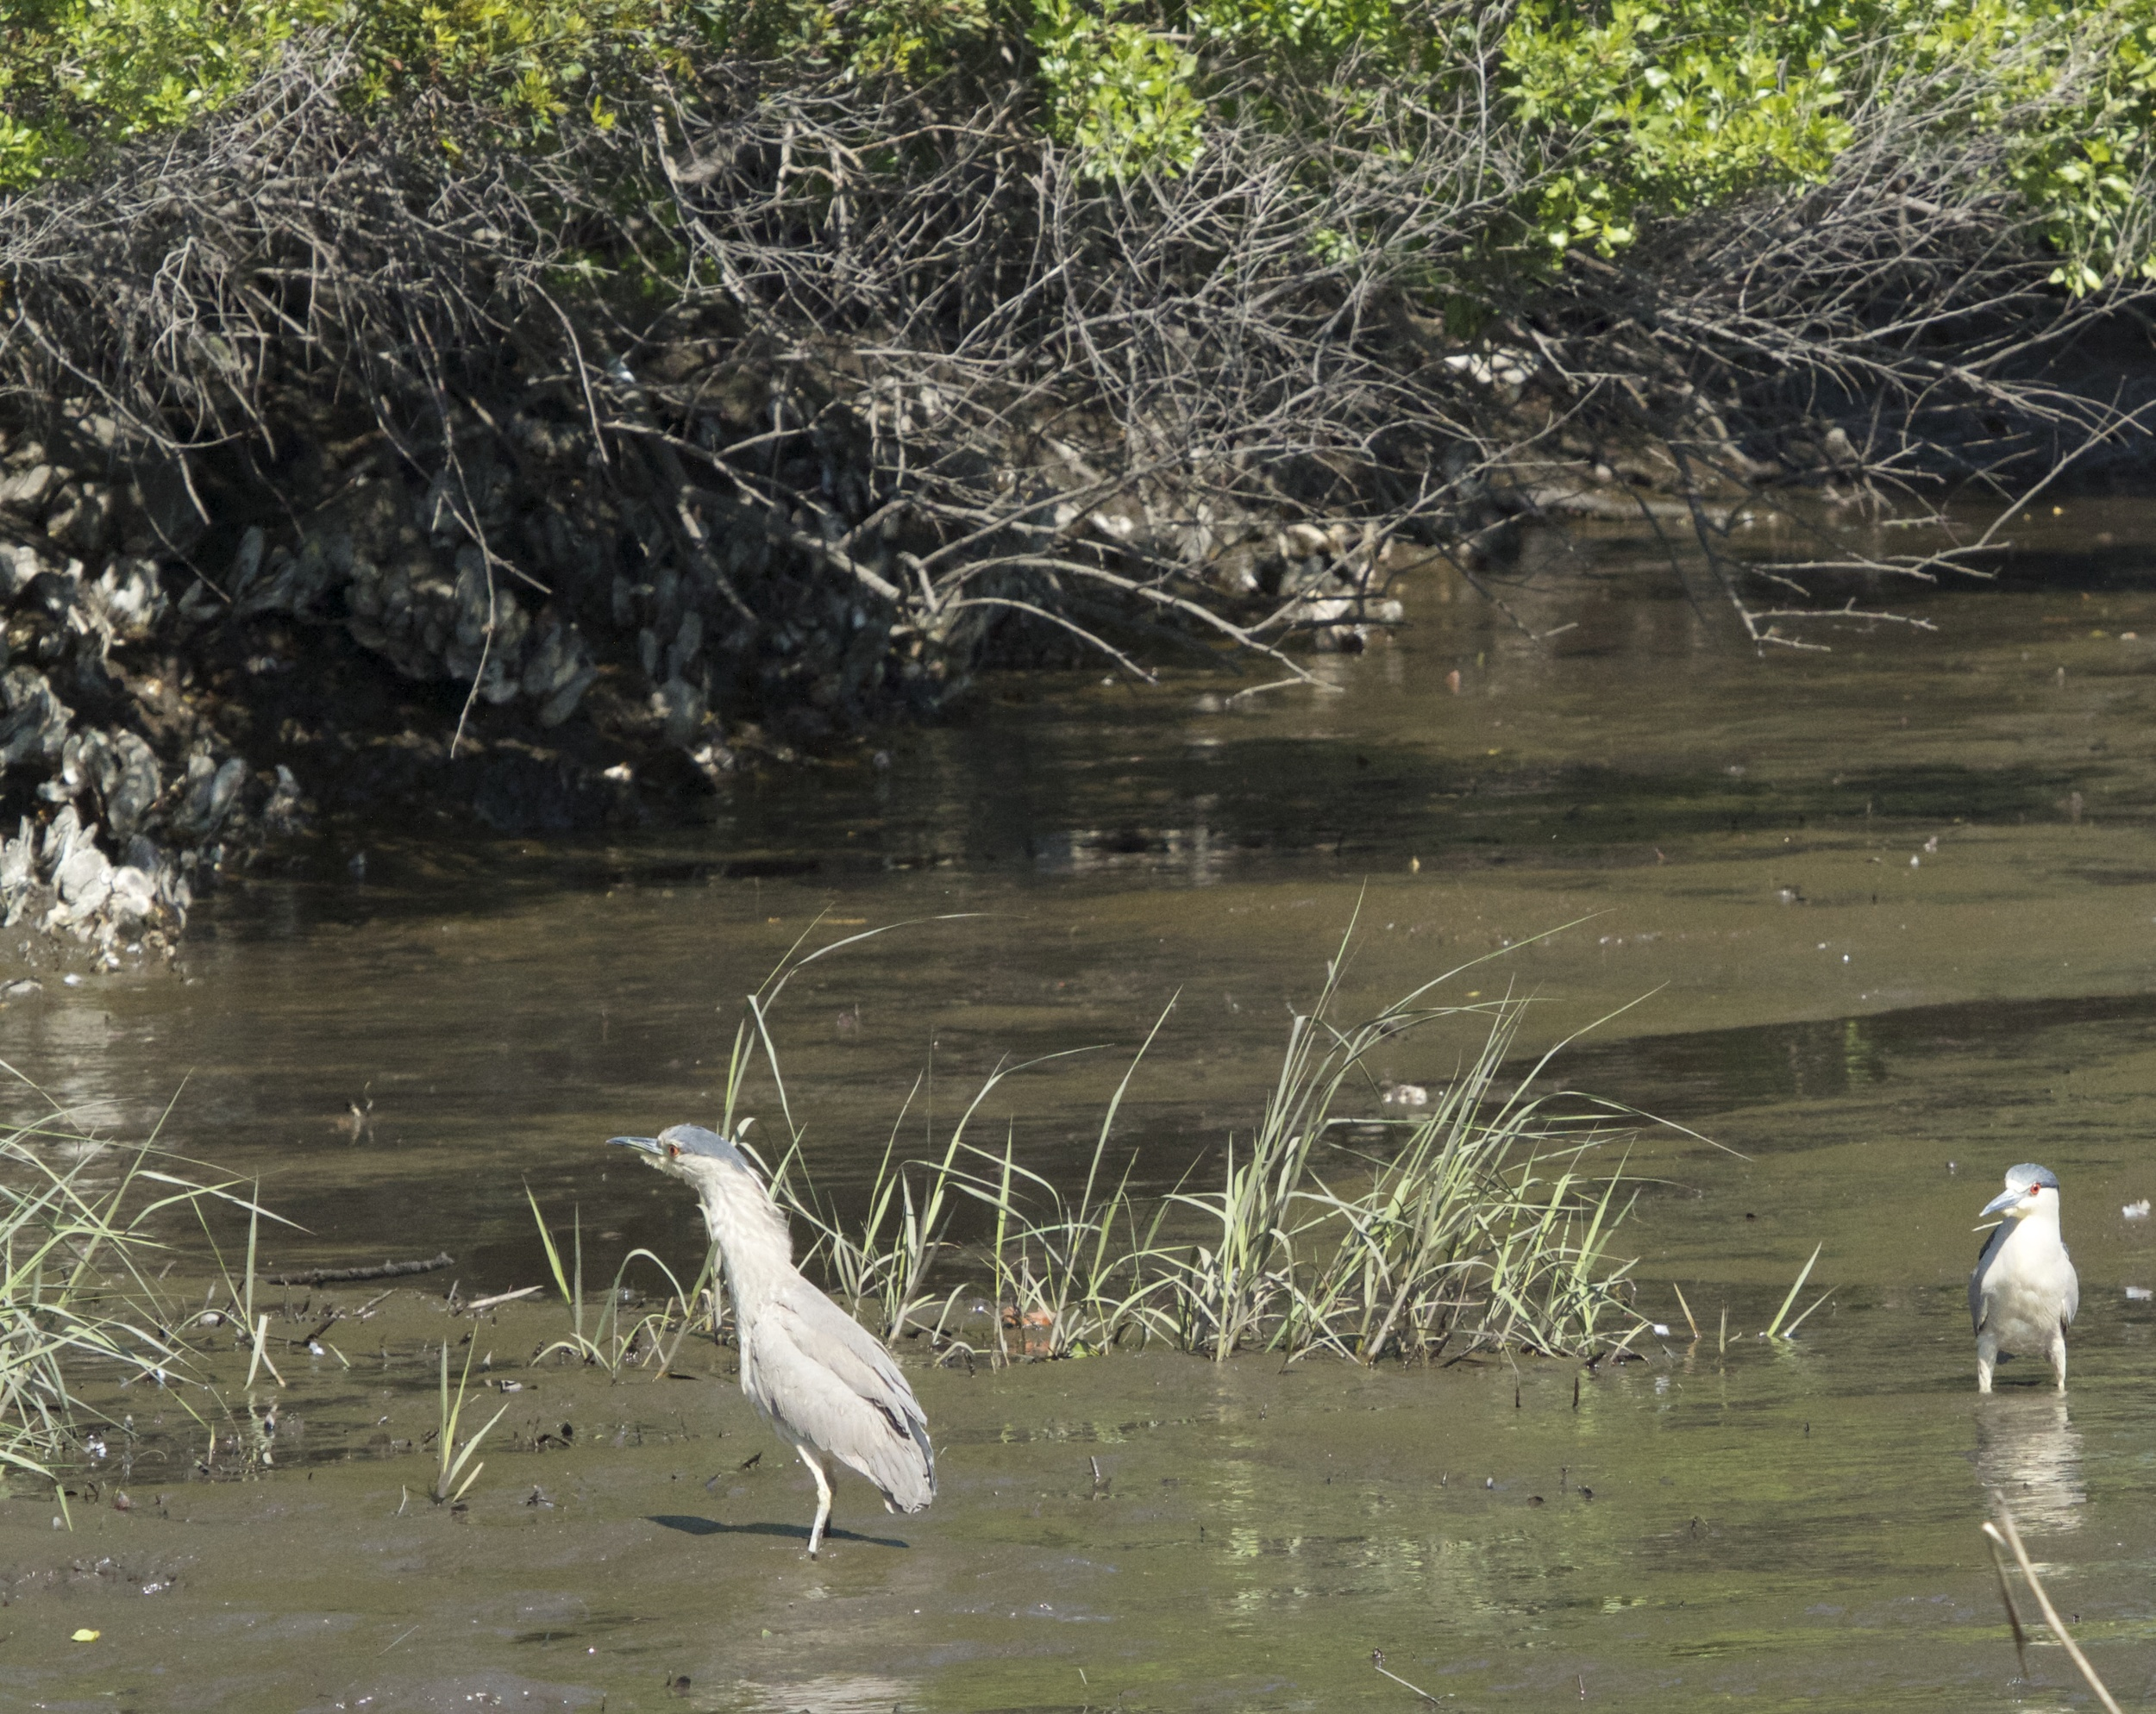 The Black Crowned Herons fly into the mud below and look up to see who's knockin!